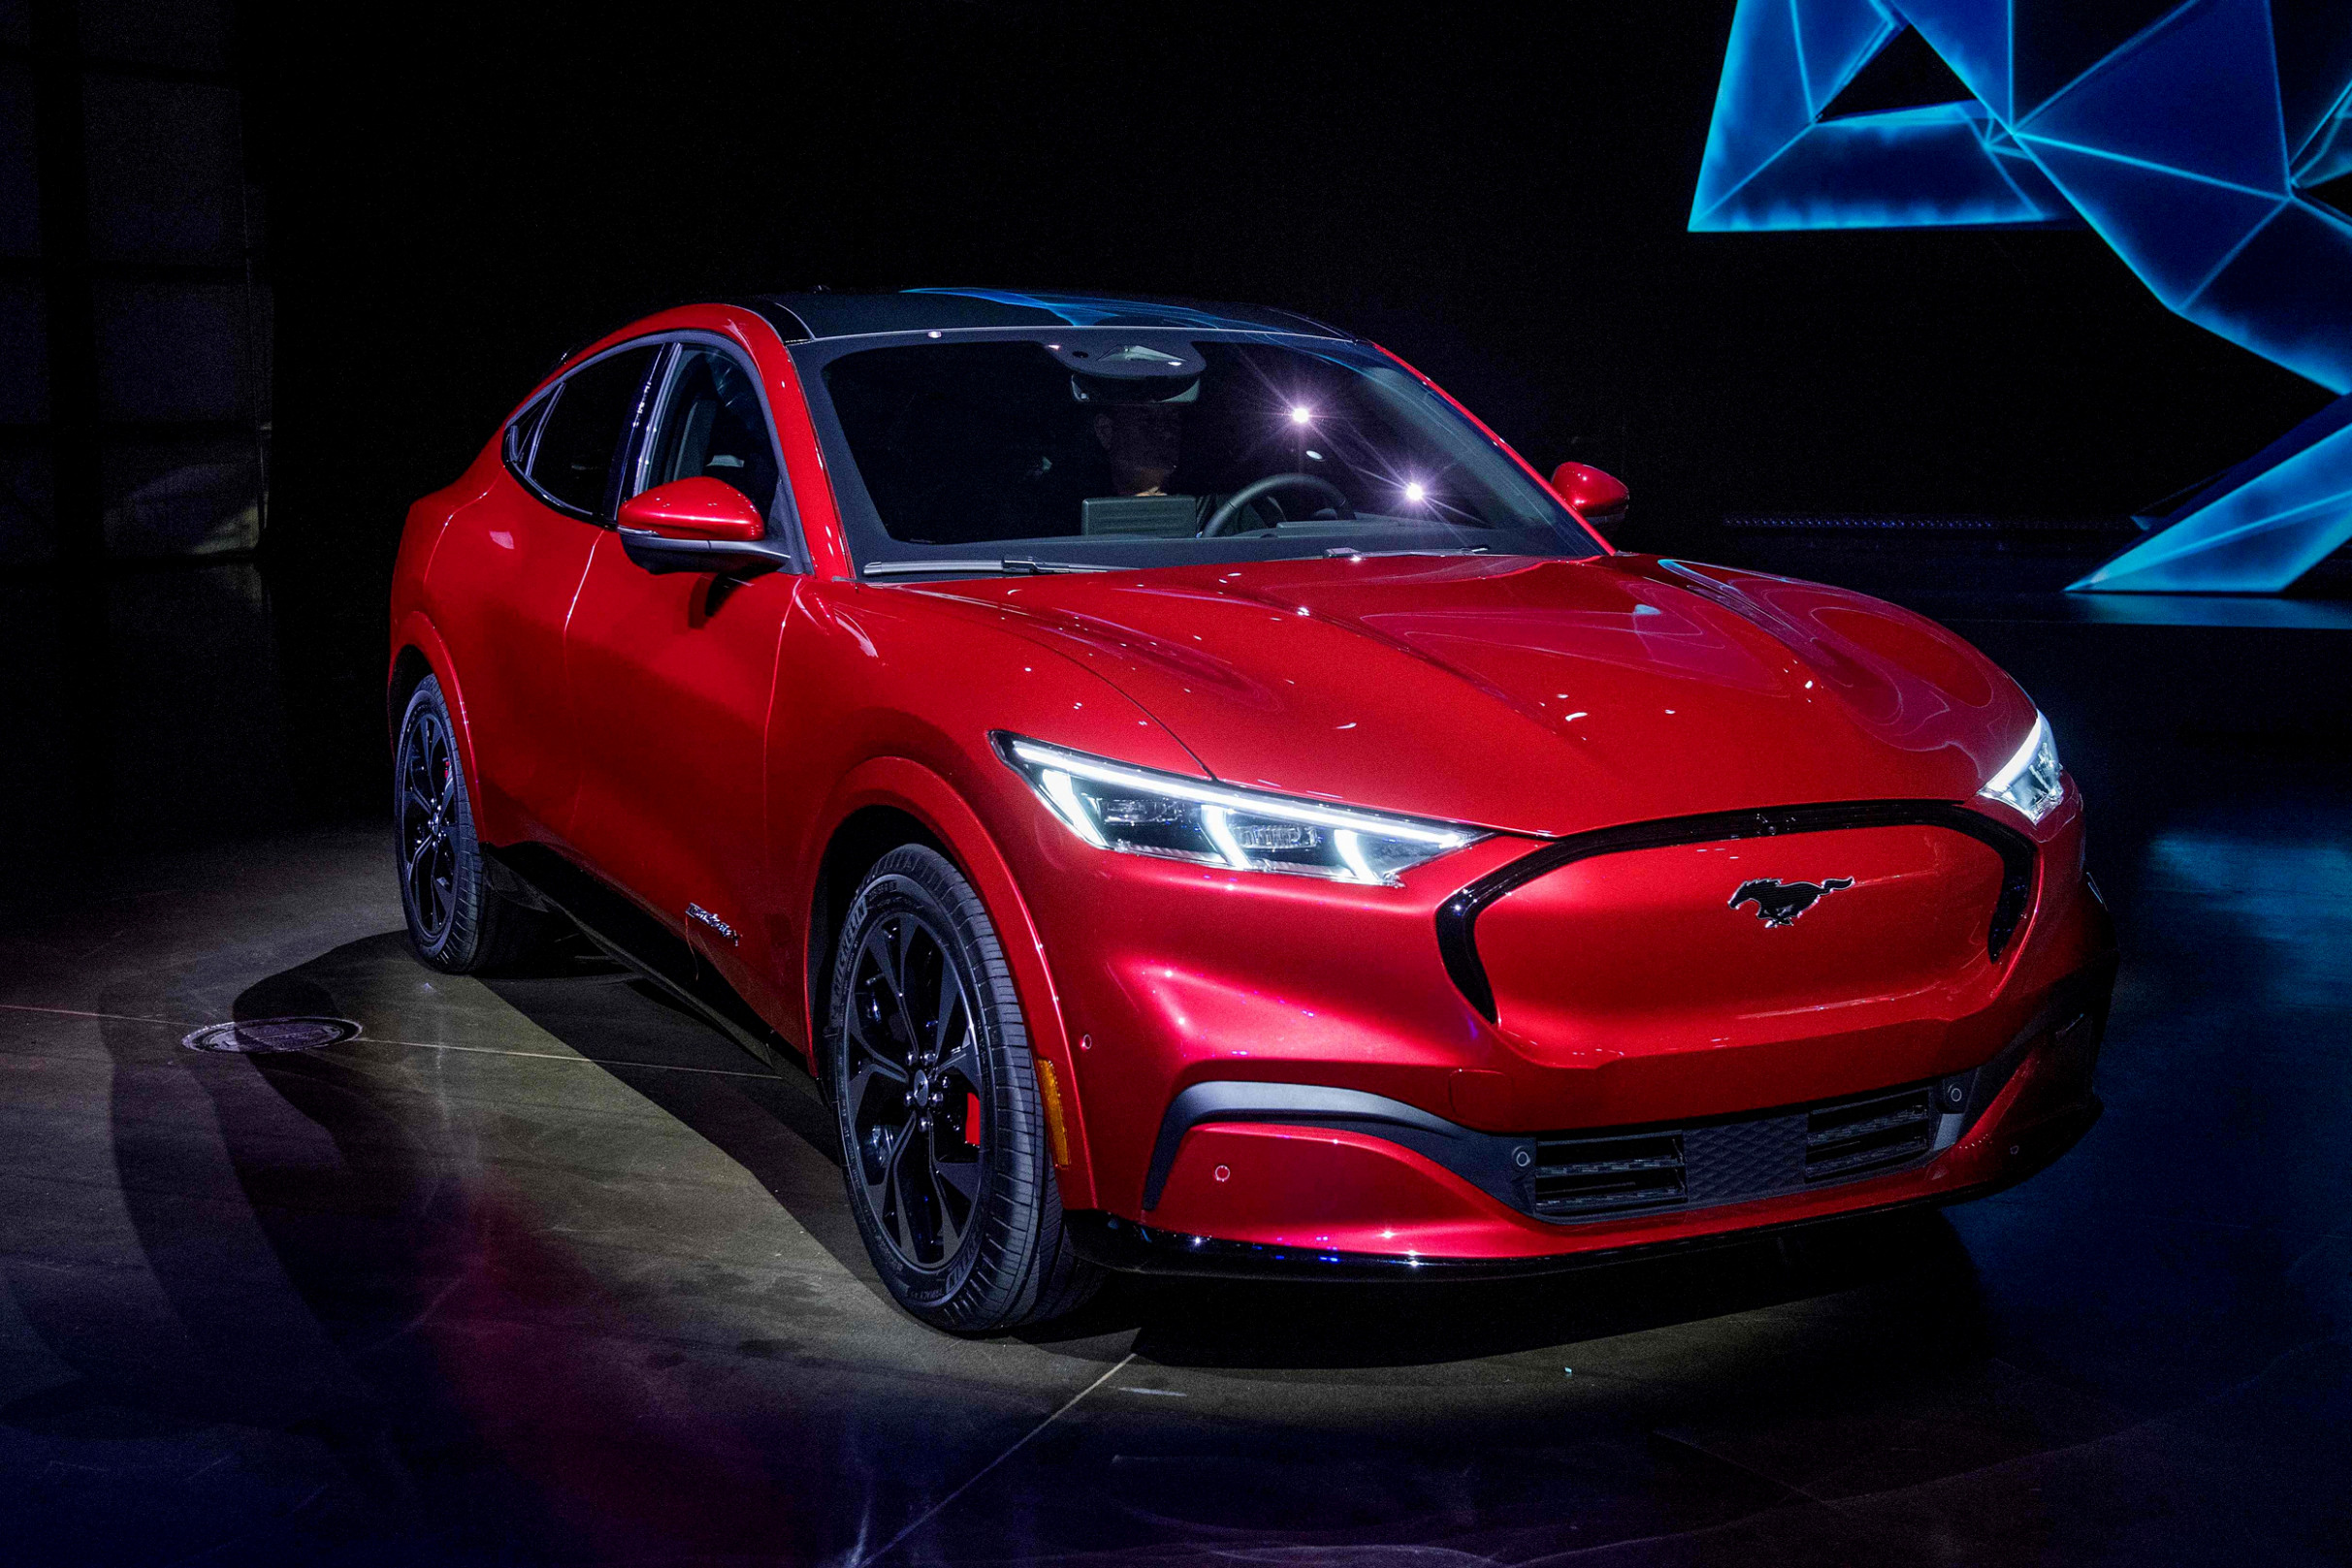 Redesign and Concept Ford Cars In 2022